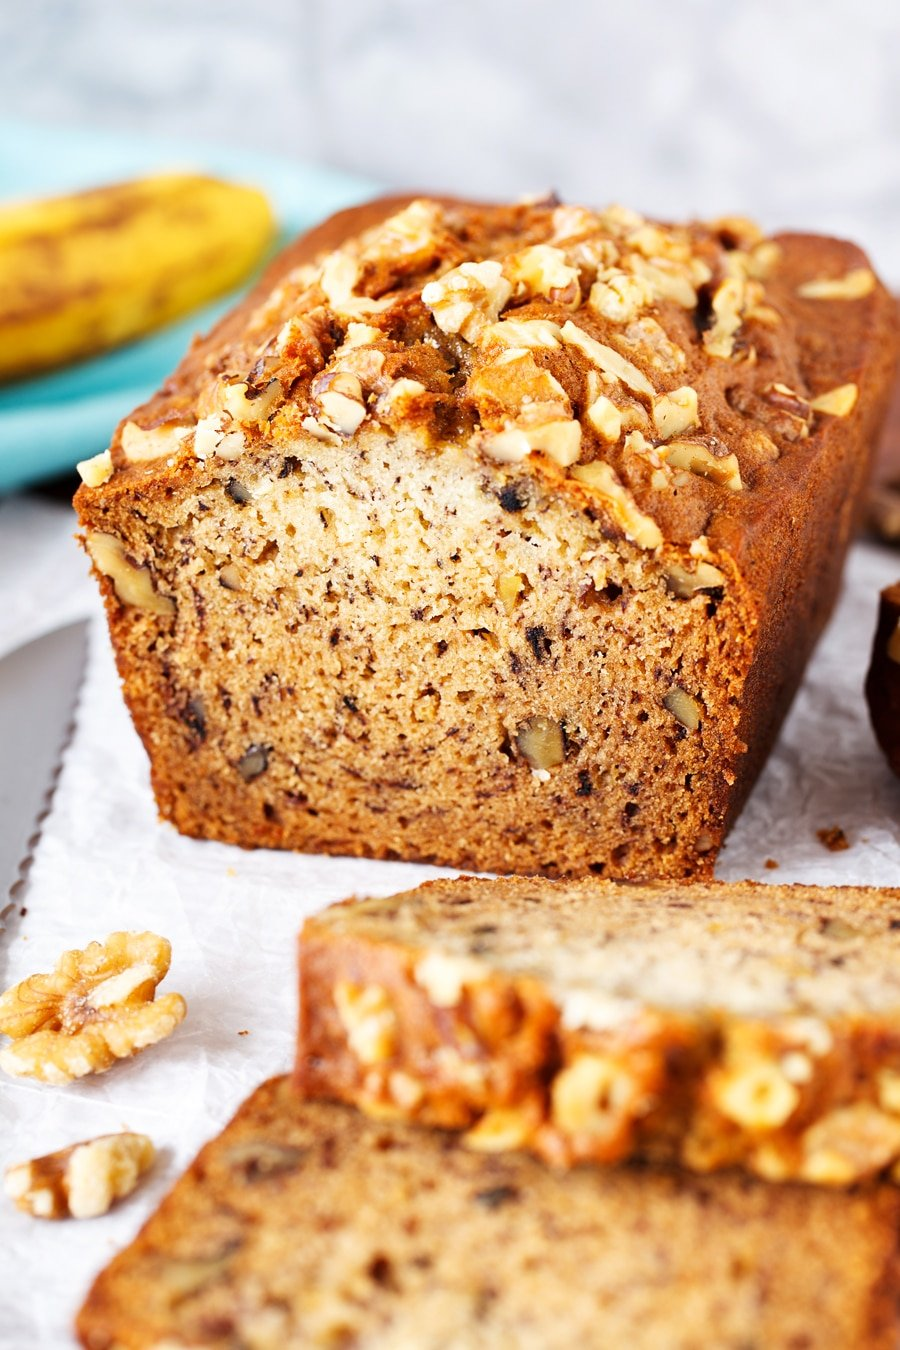 bread banana starbucks recipe copycat butter caribbean delicious bananas sweet walnuts comfort soul sugar always there college